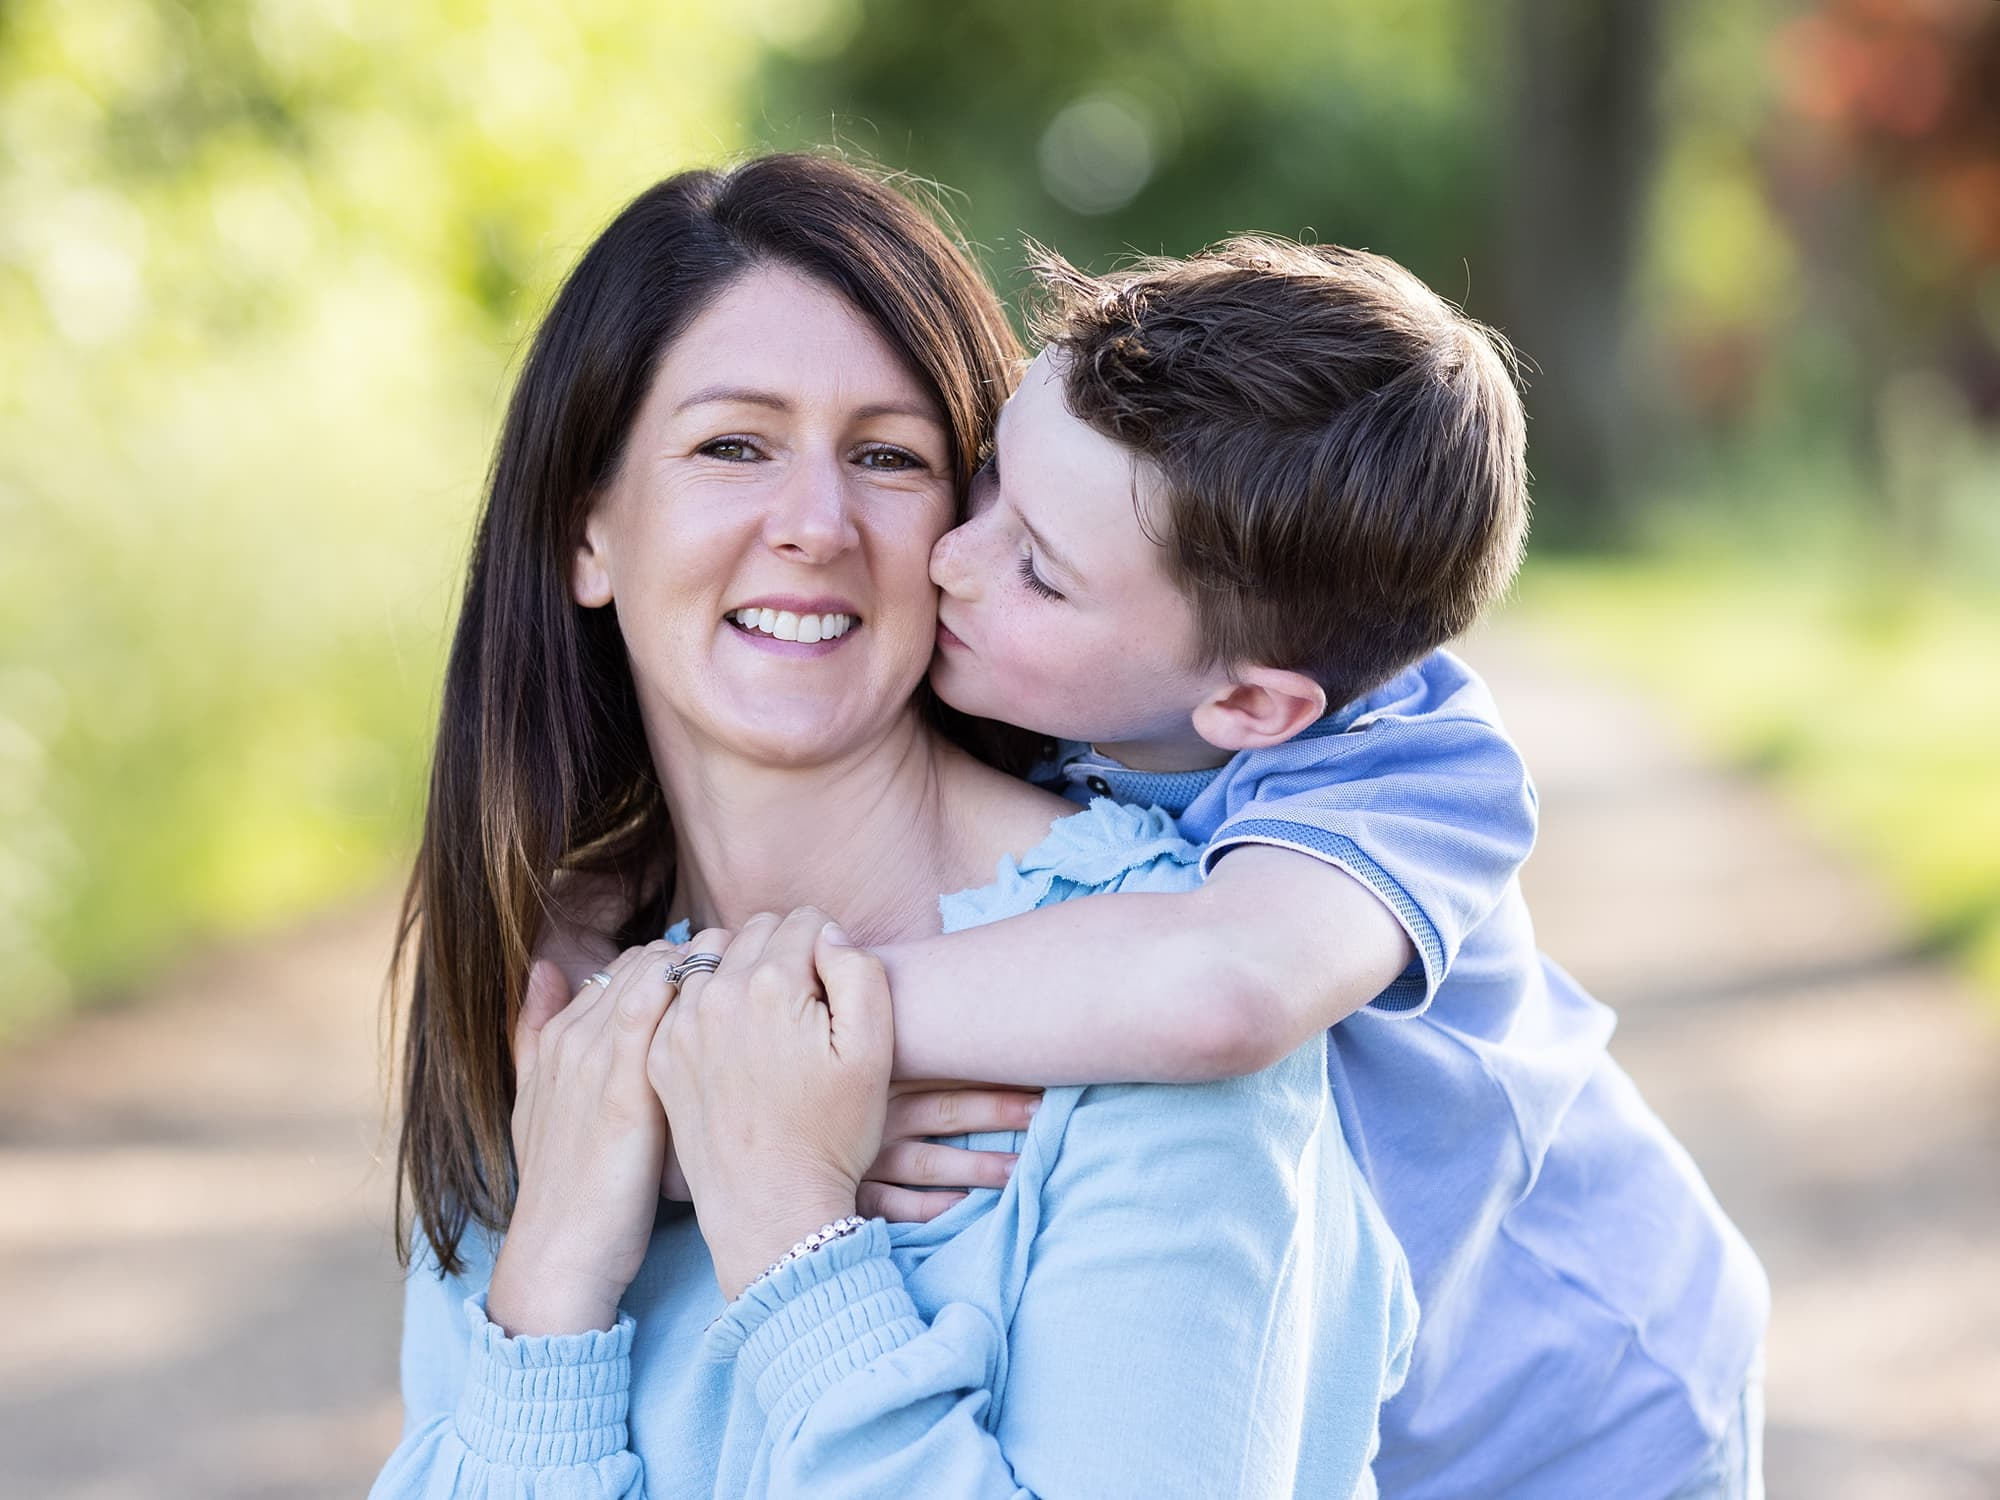 Little boy kisses his Mothers cheek during outdoor family photoshoot in Suffolk Countryside